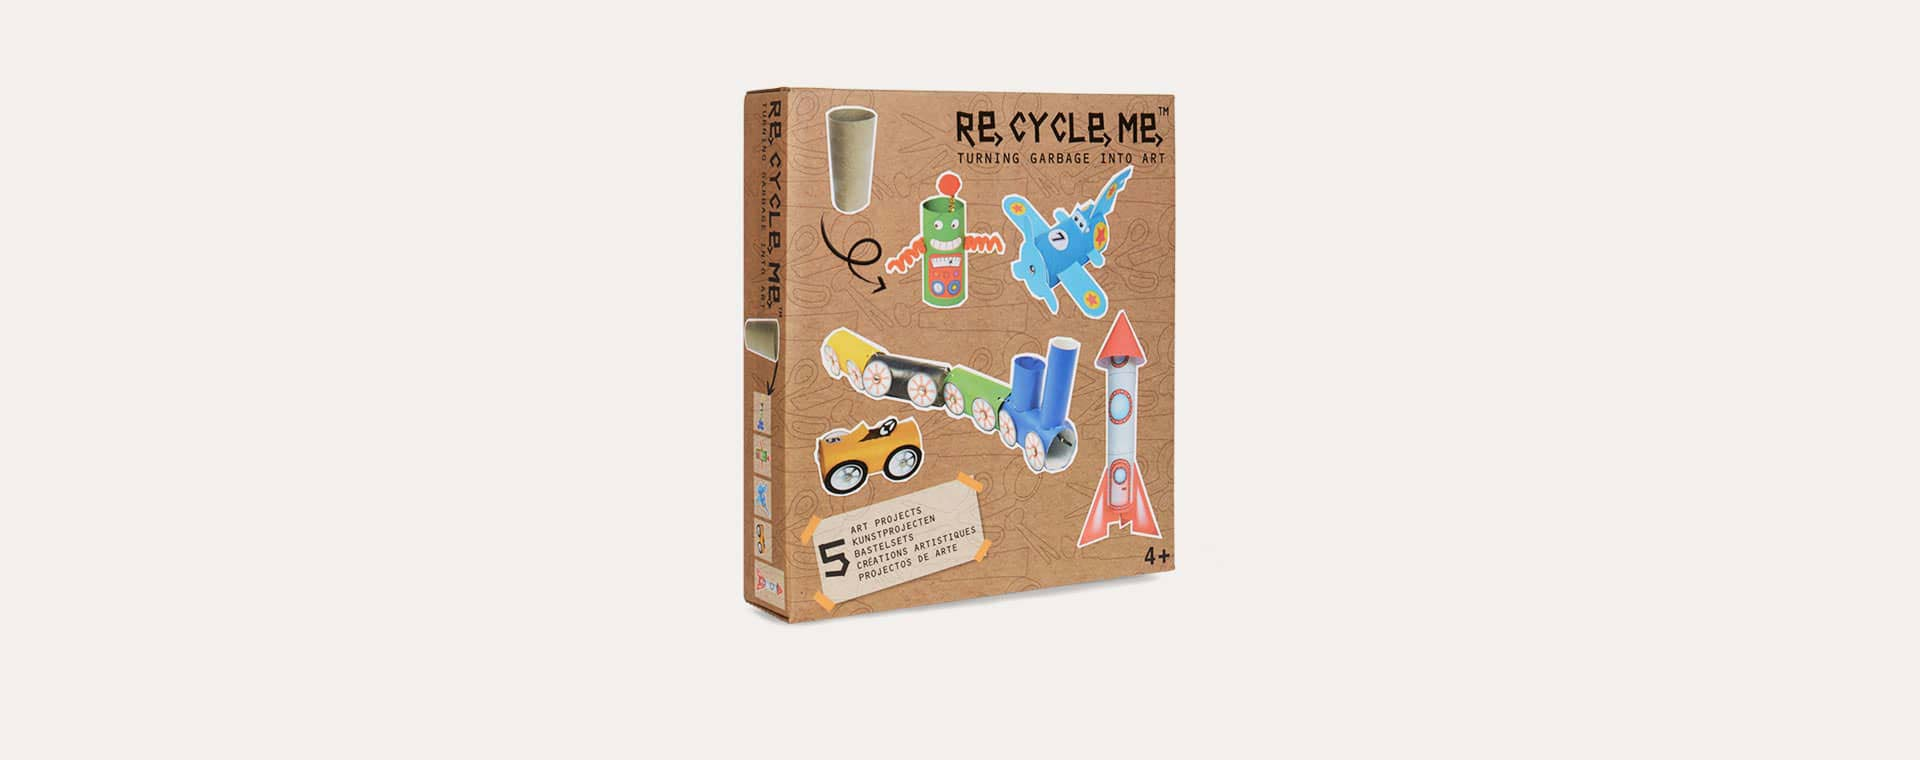 Toilet Roll On The Go Re-Cycle-Me Recyclable Crafts